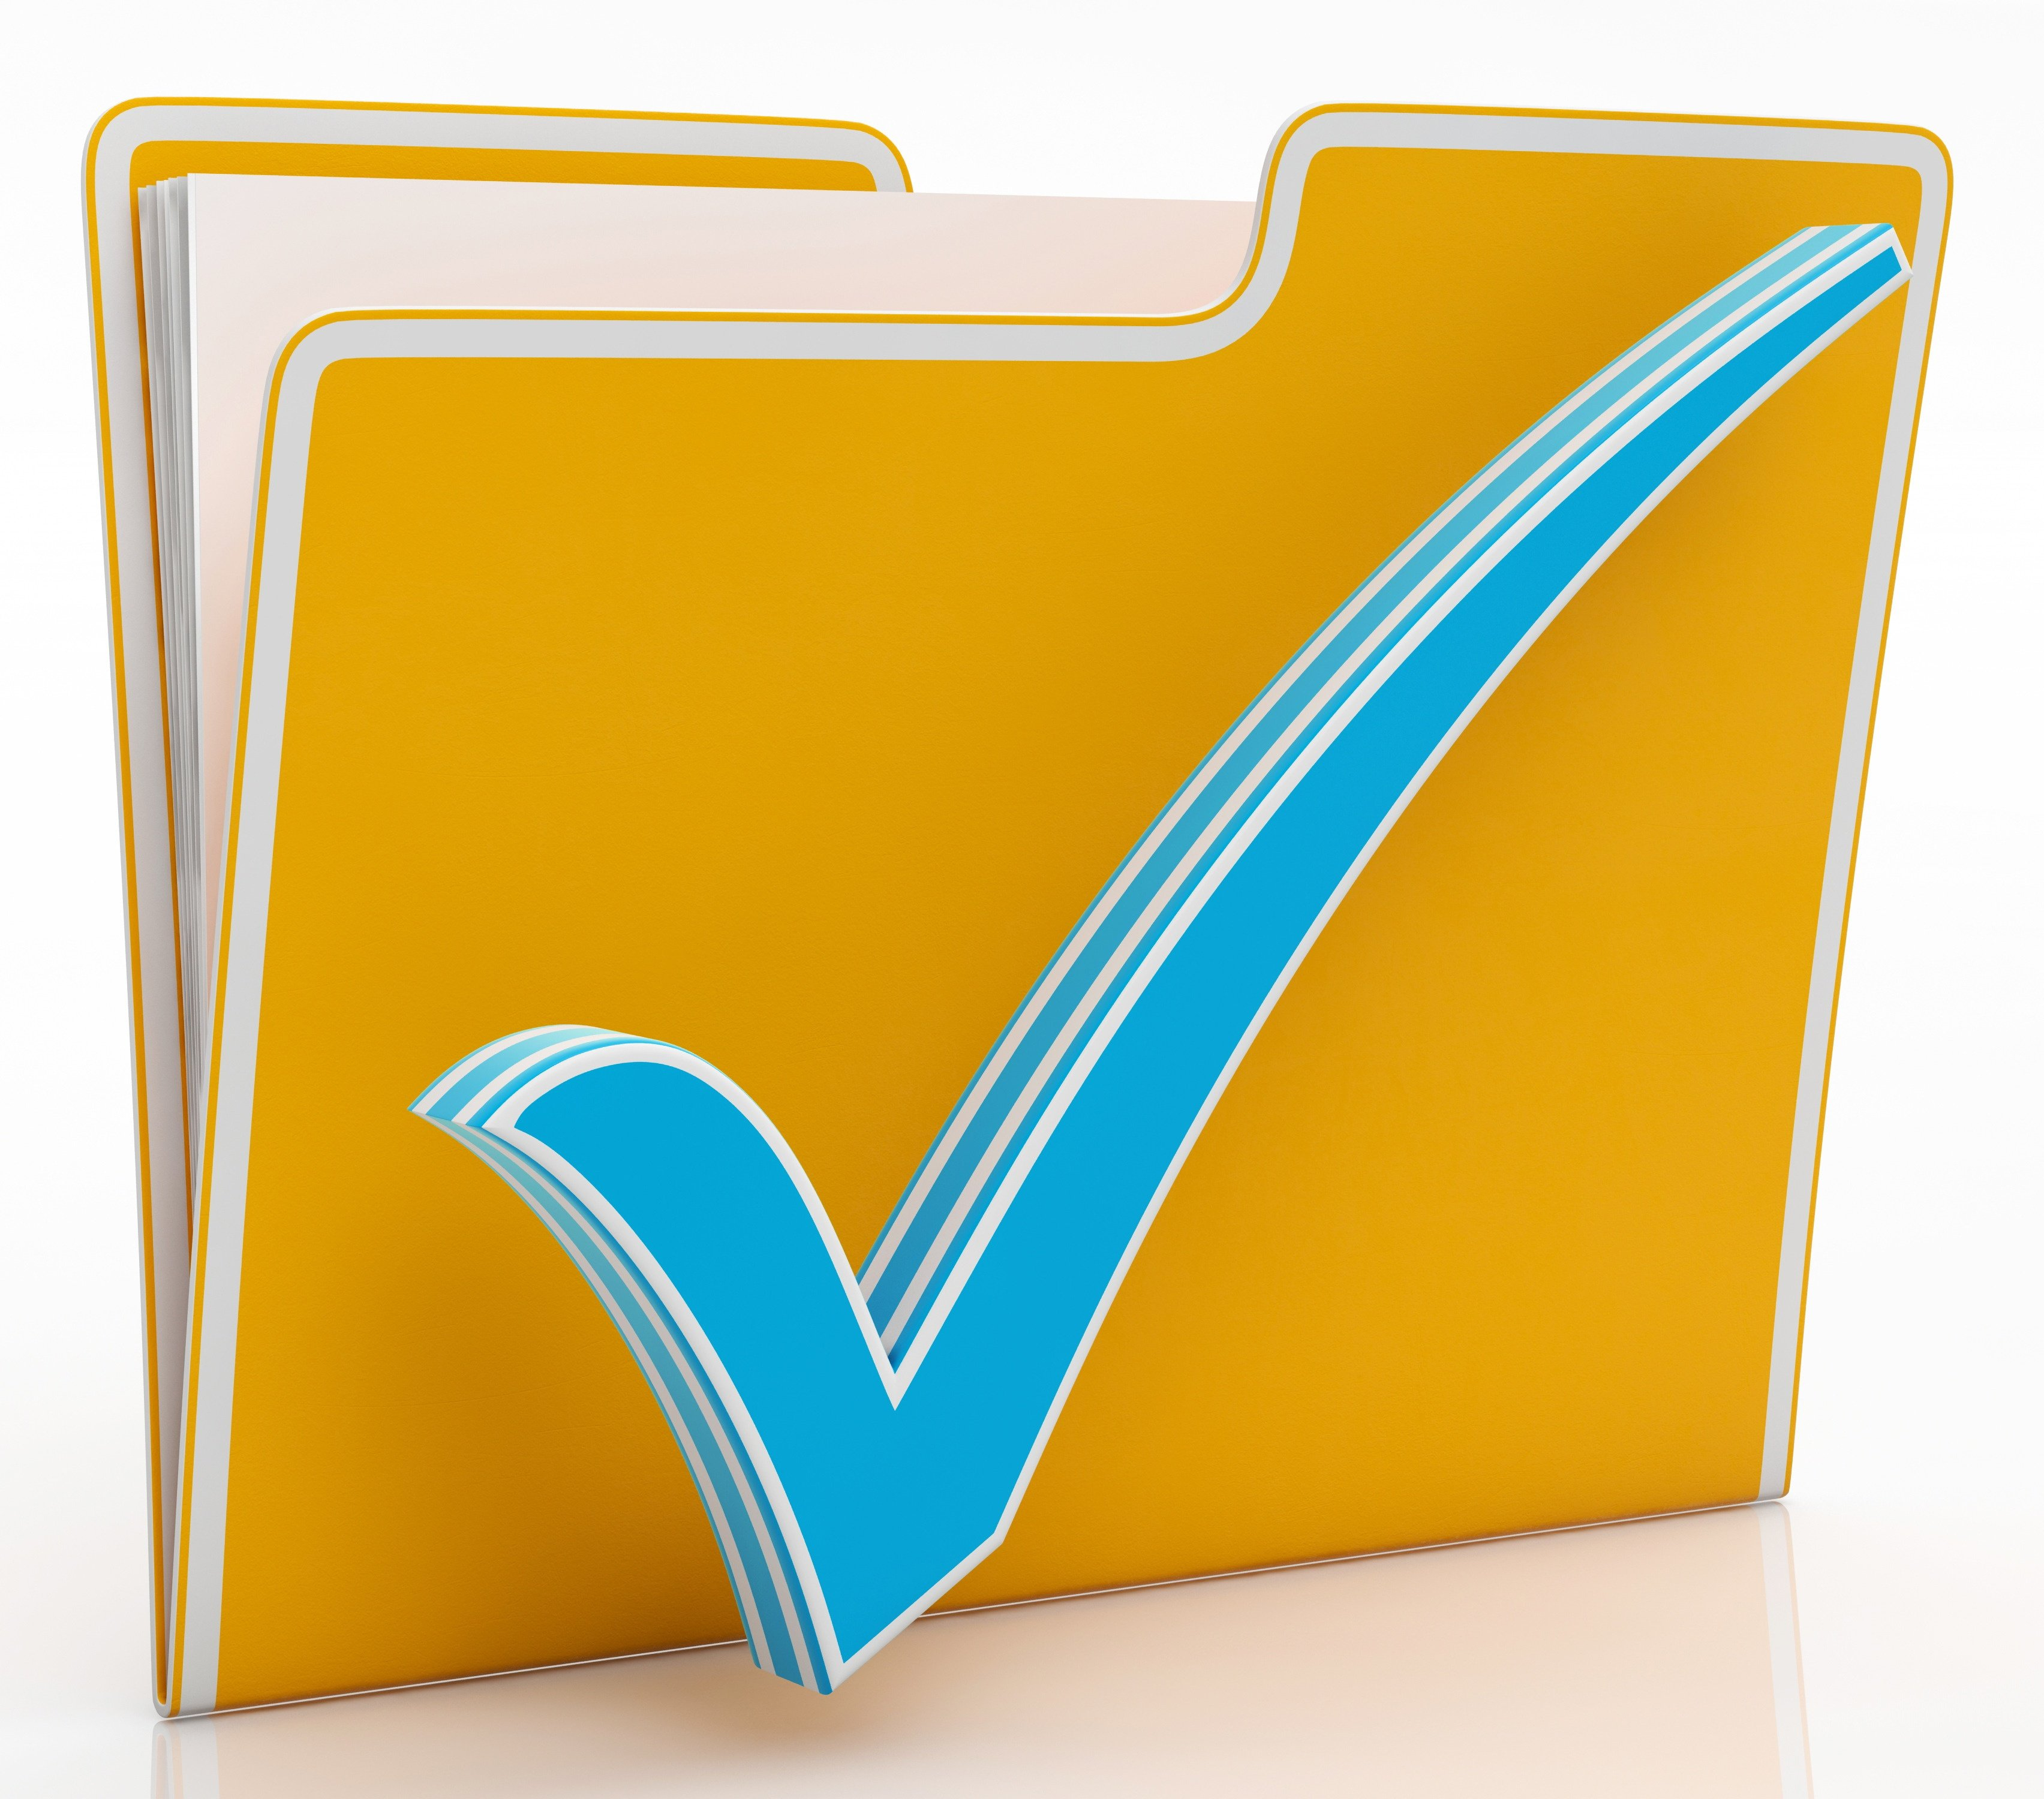 Small Business Spring Cleaning 101: Don't Ignore Business Records Management - Featured Image